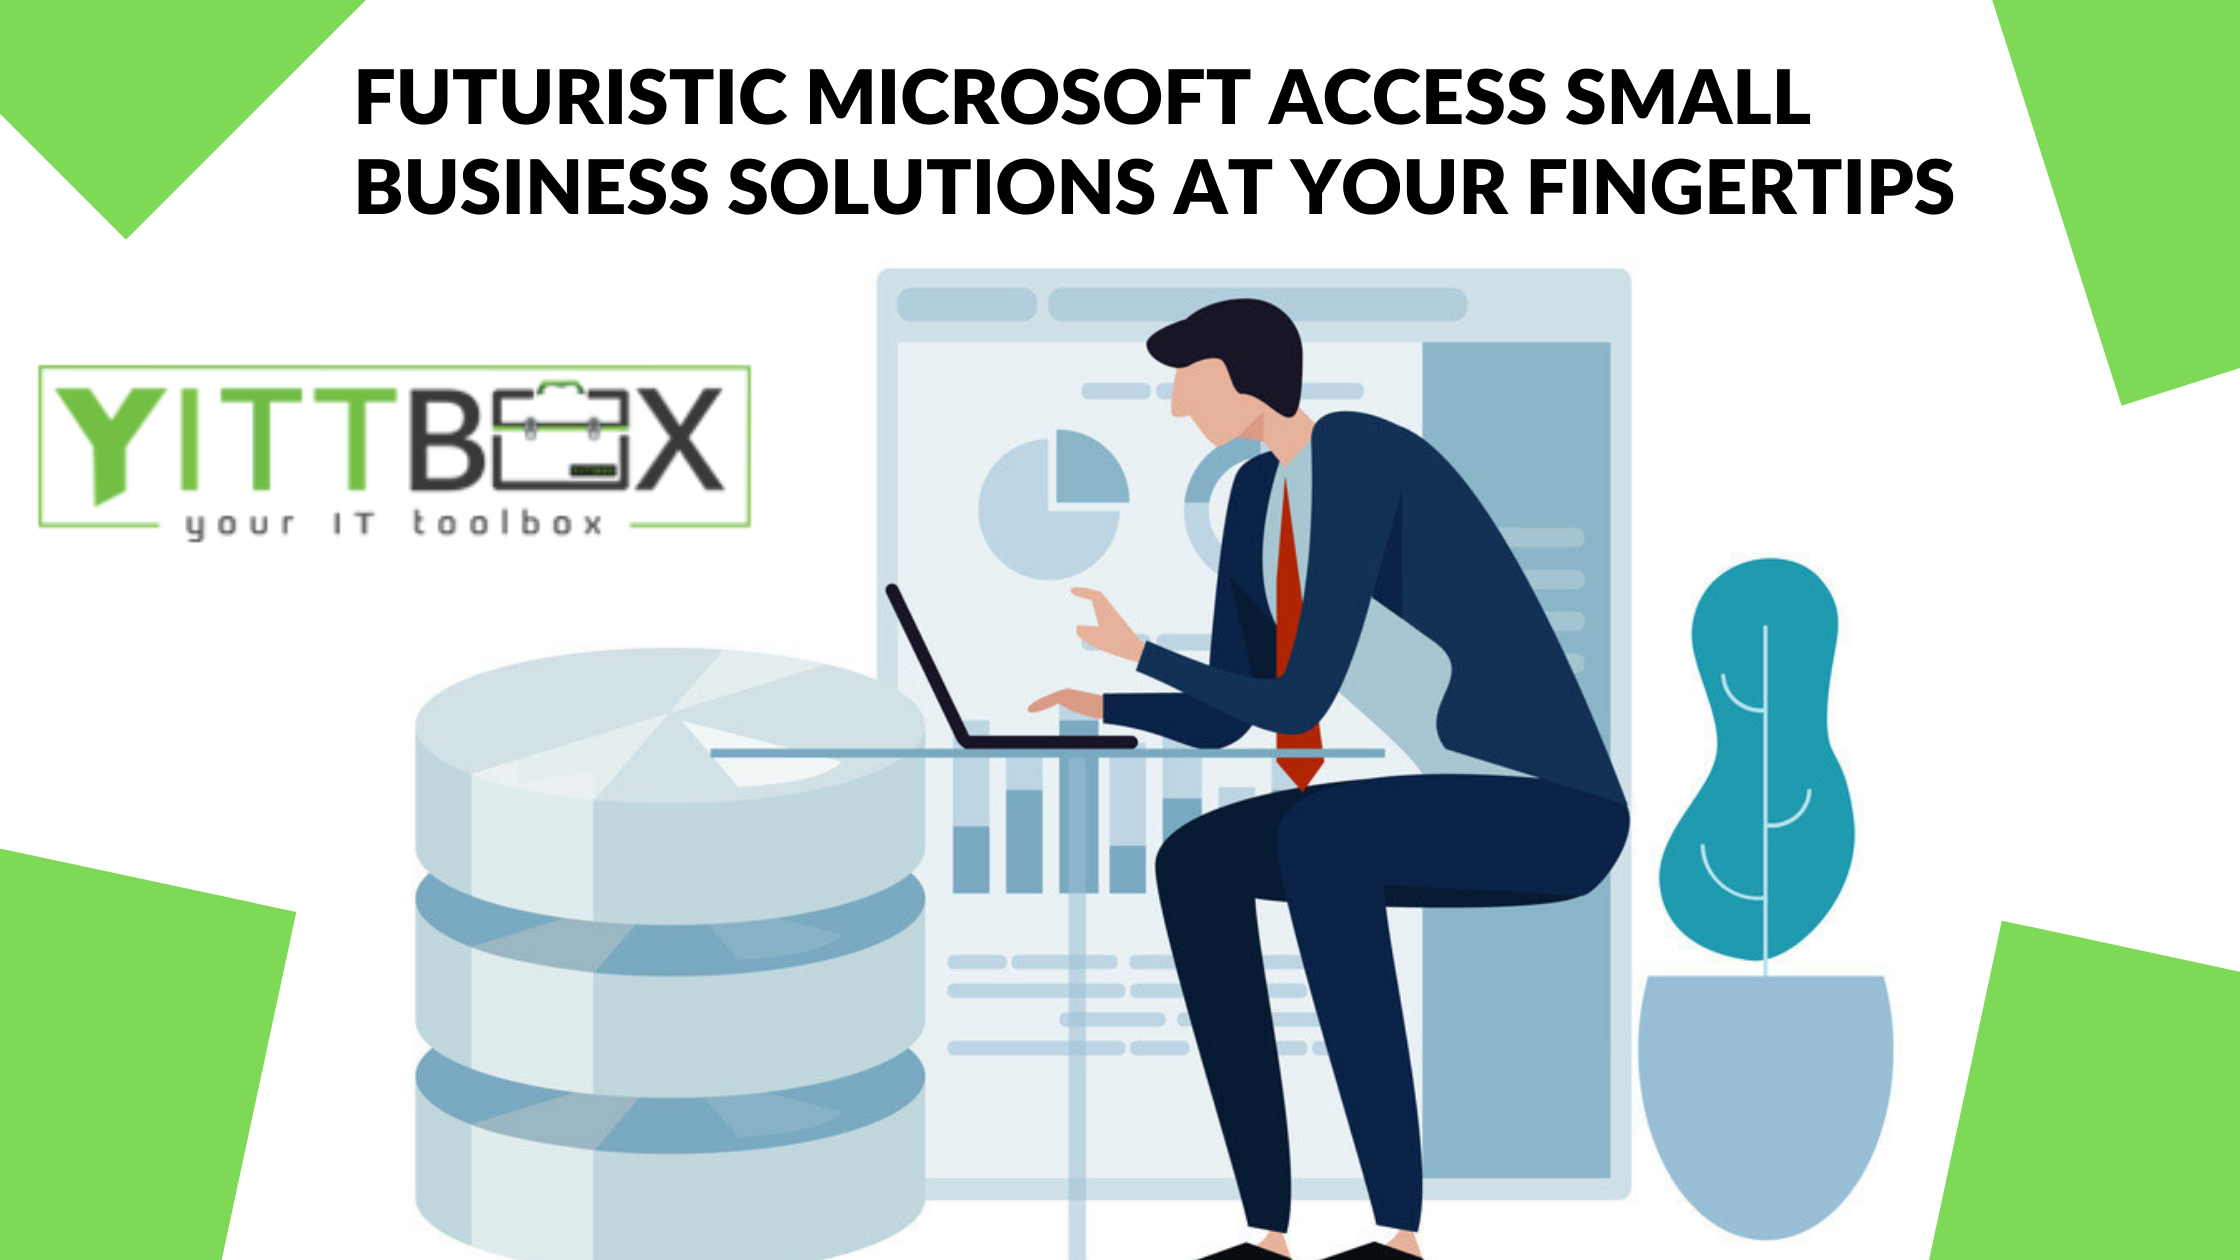 Futuristic Microsoft Access Small Business Solutions at Your Fingertips